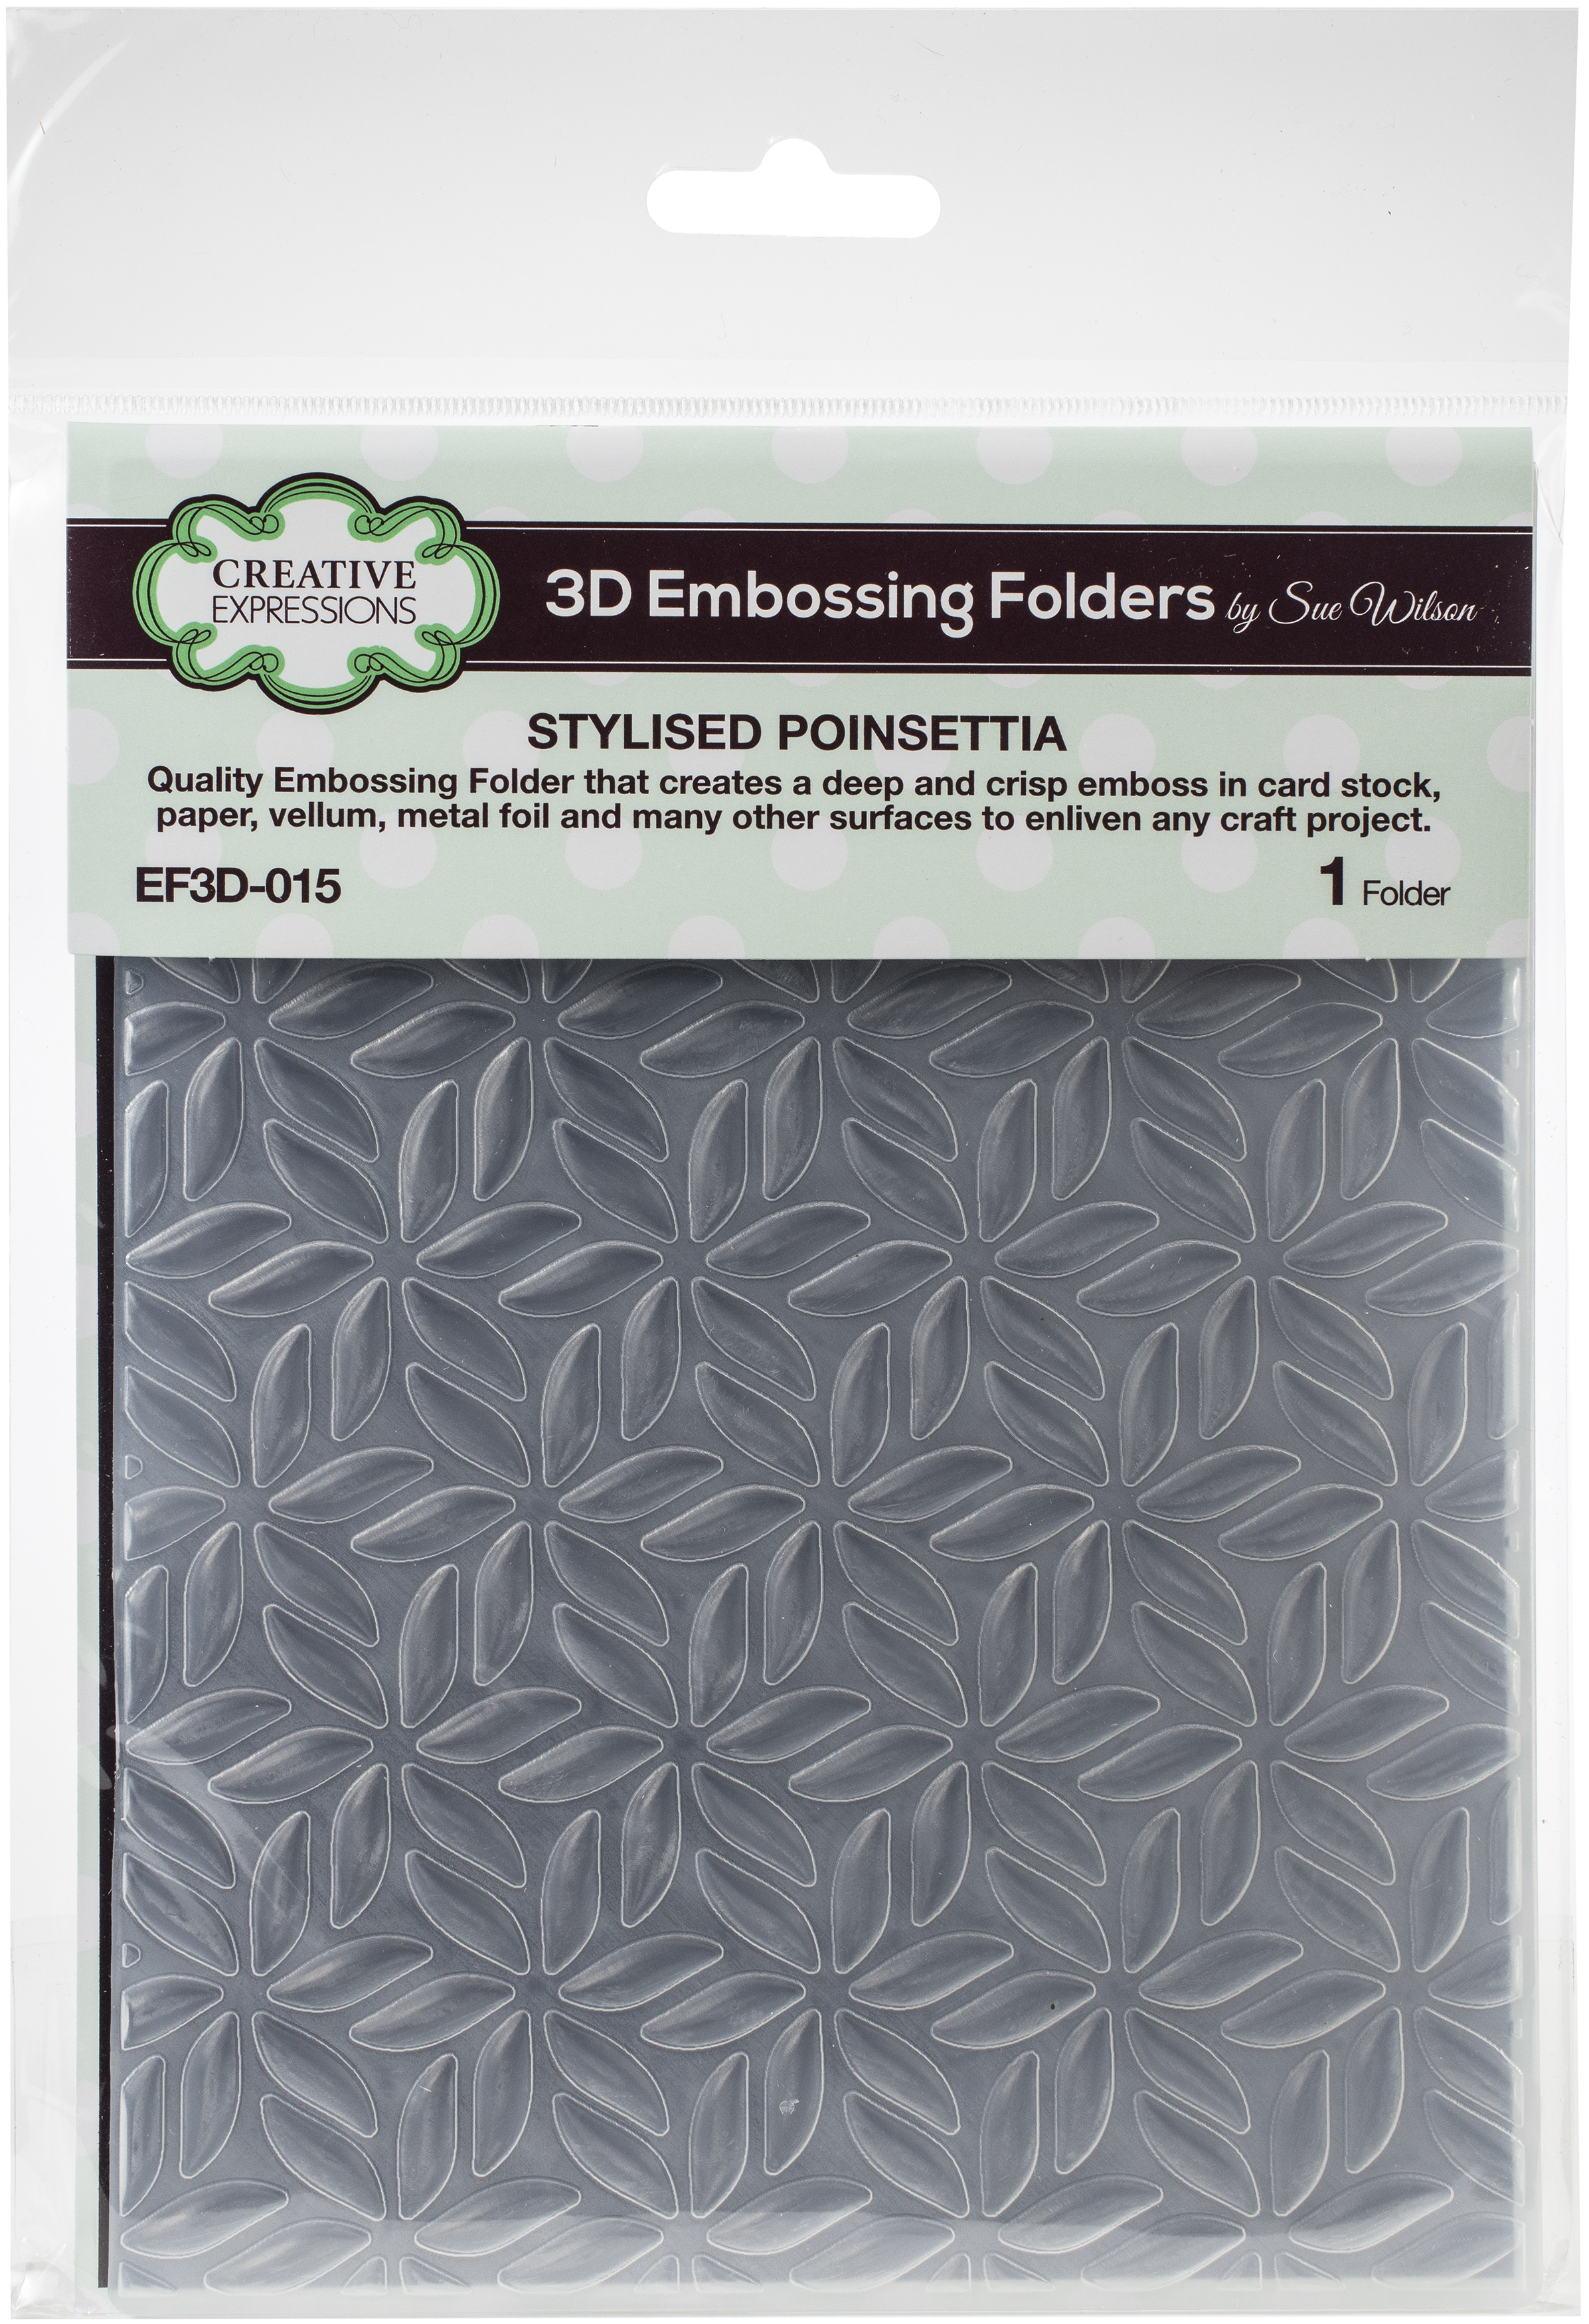 3D Embossing Folder - Stylised Poinsettia (Creative Expressions)